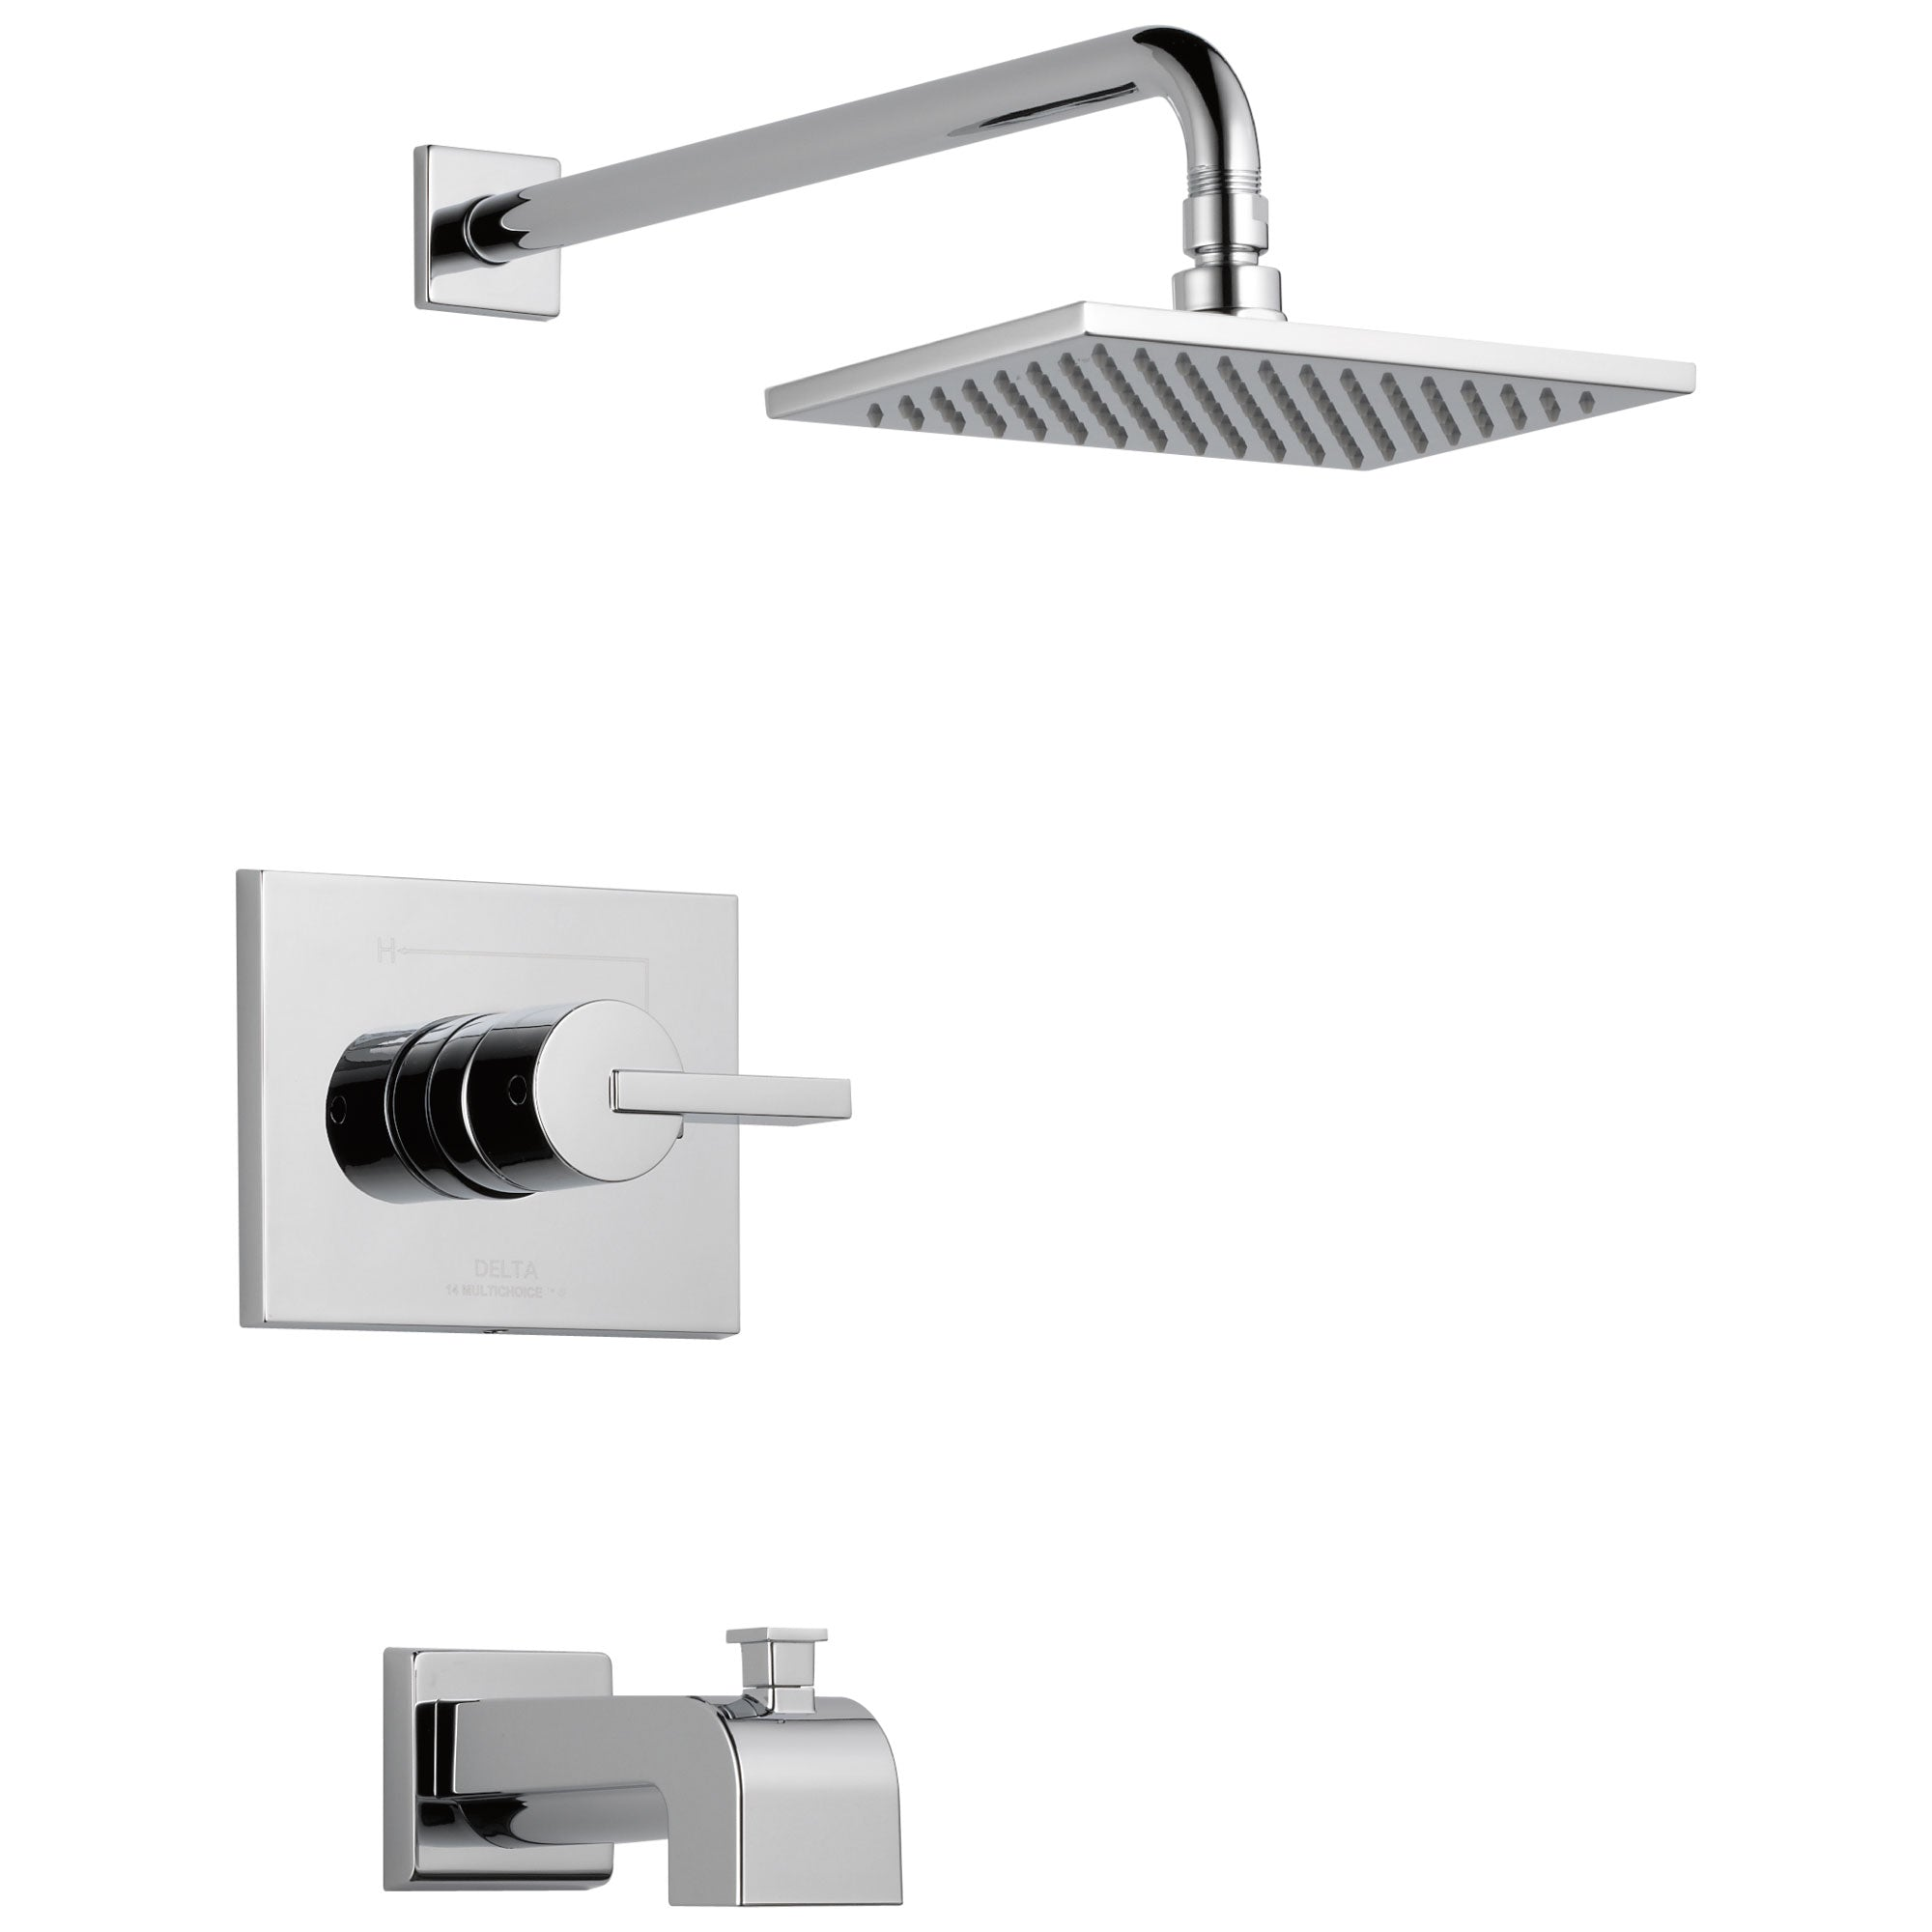 Delta Vero Chrome Finish Monitor 14 Series Water Efficient Tub & Shower Combination Faucet Includes Cartridge, Handle, and Valve with Stops D3450V